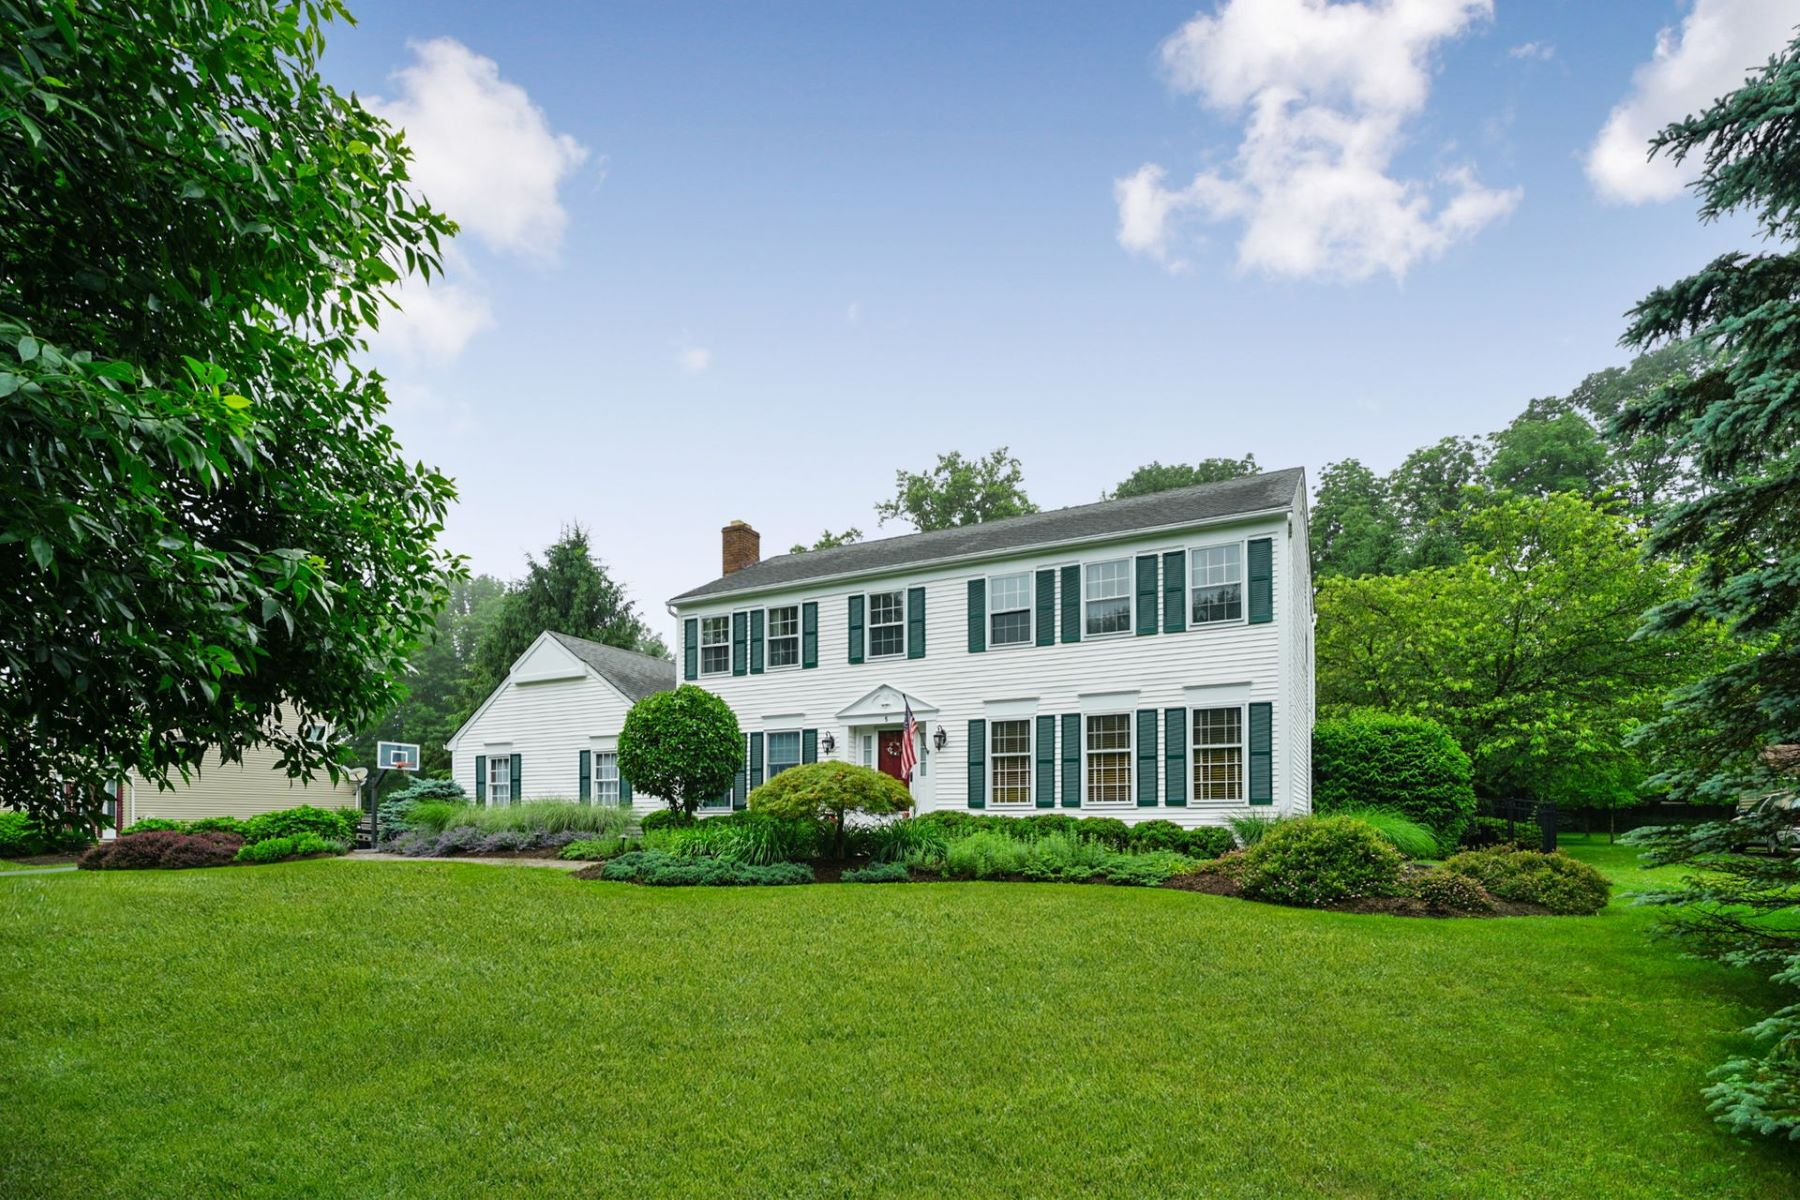 Single Family Homes for Sale at Spacious Colonial 5 Cherry Street, Long Valley, New Jersey 07853 United States